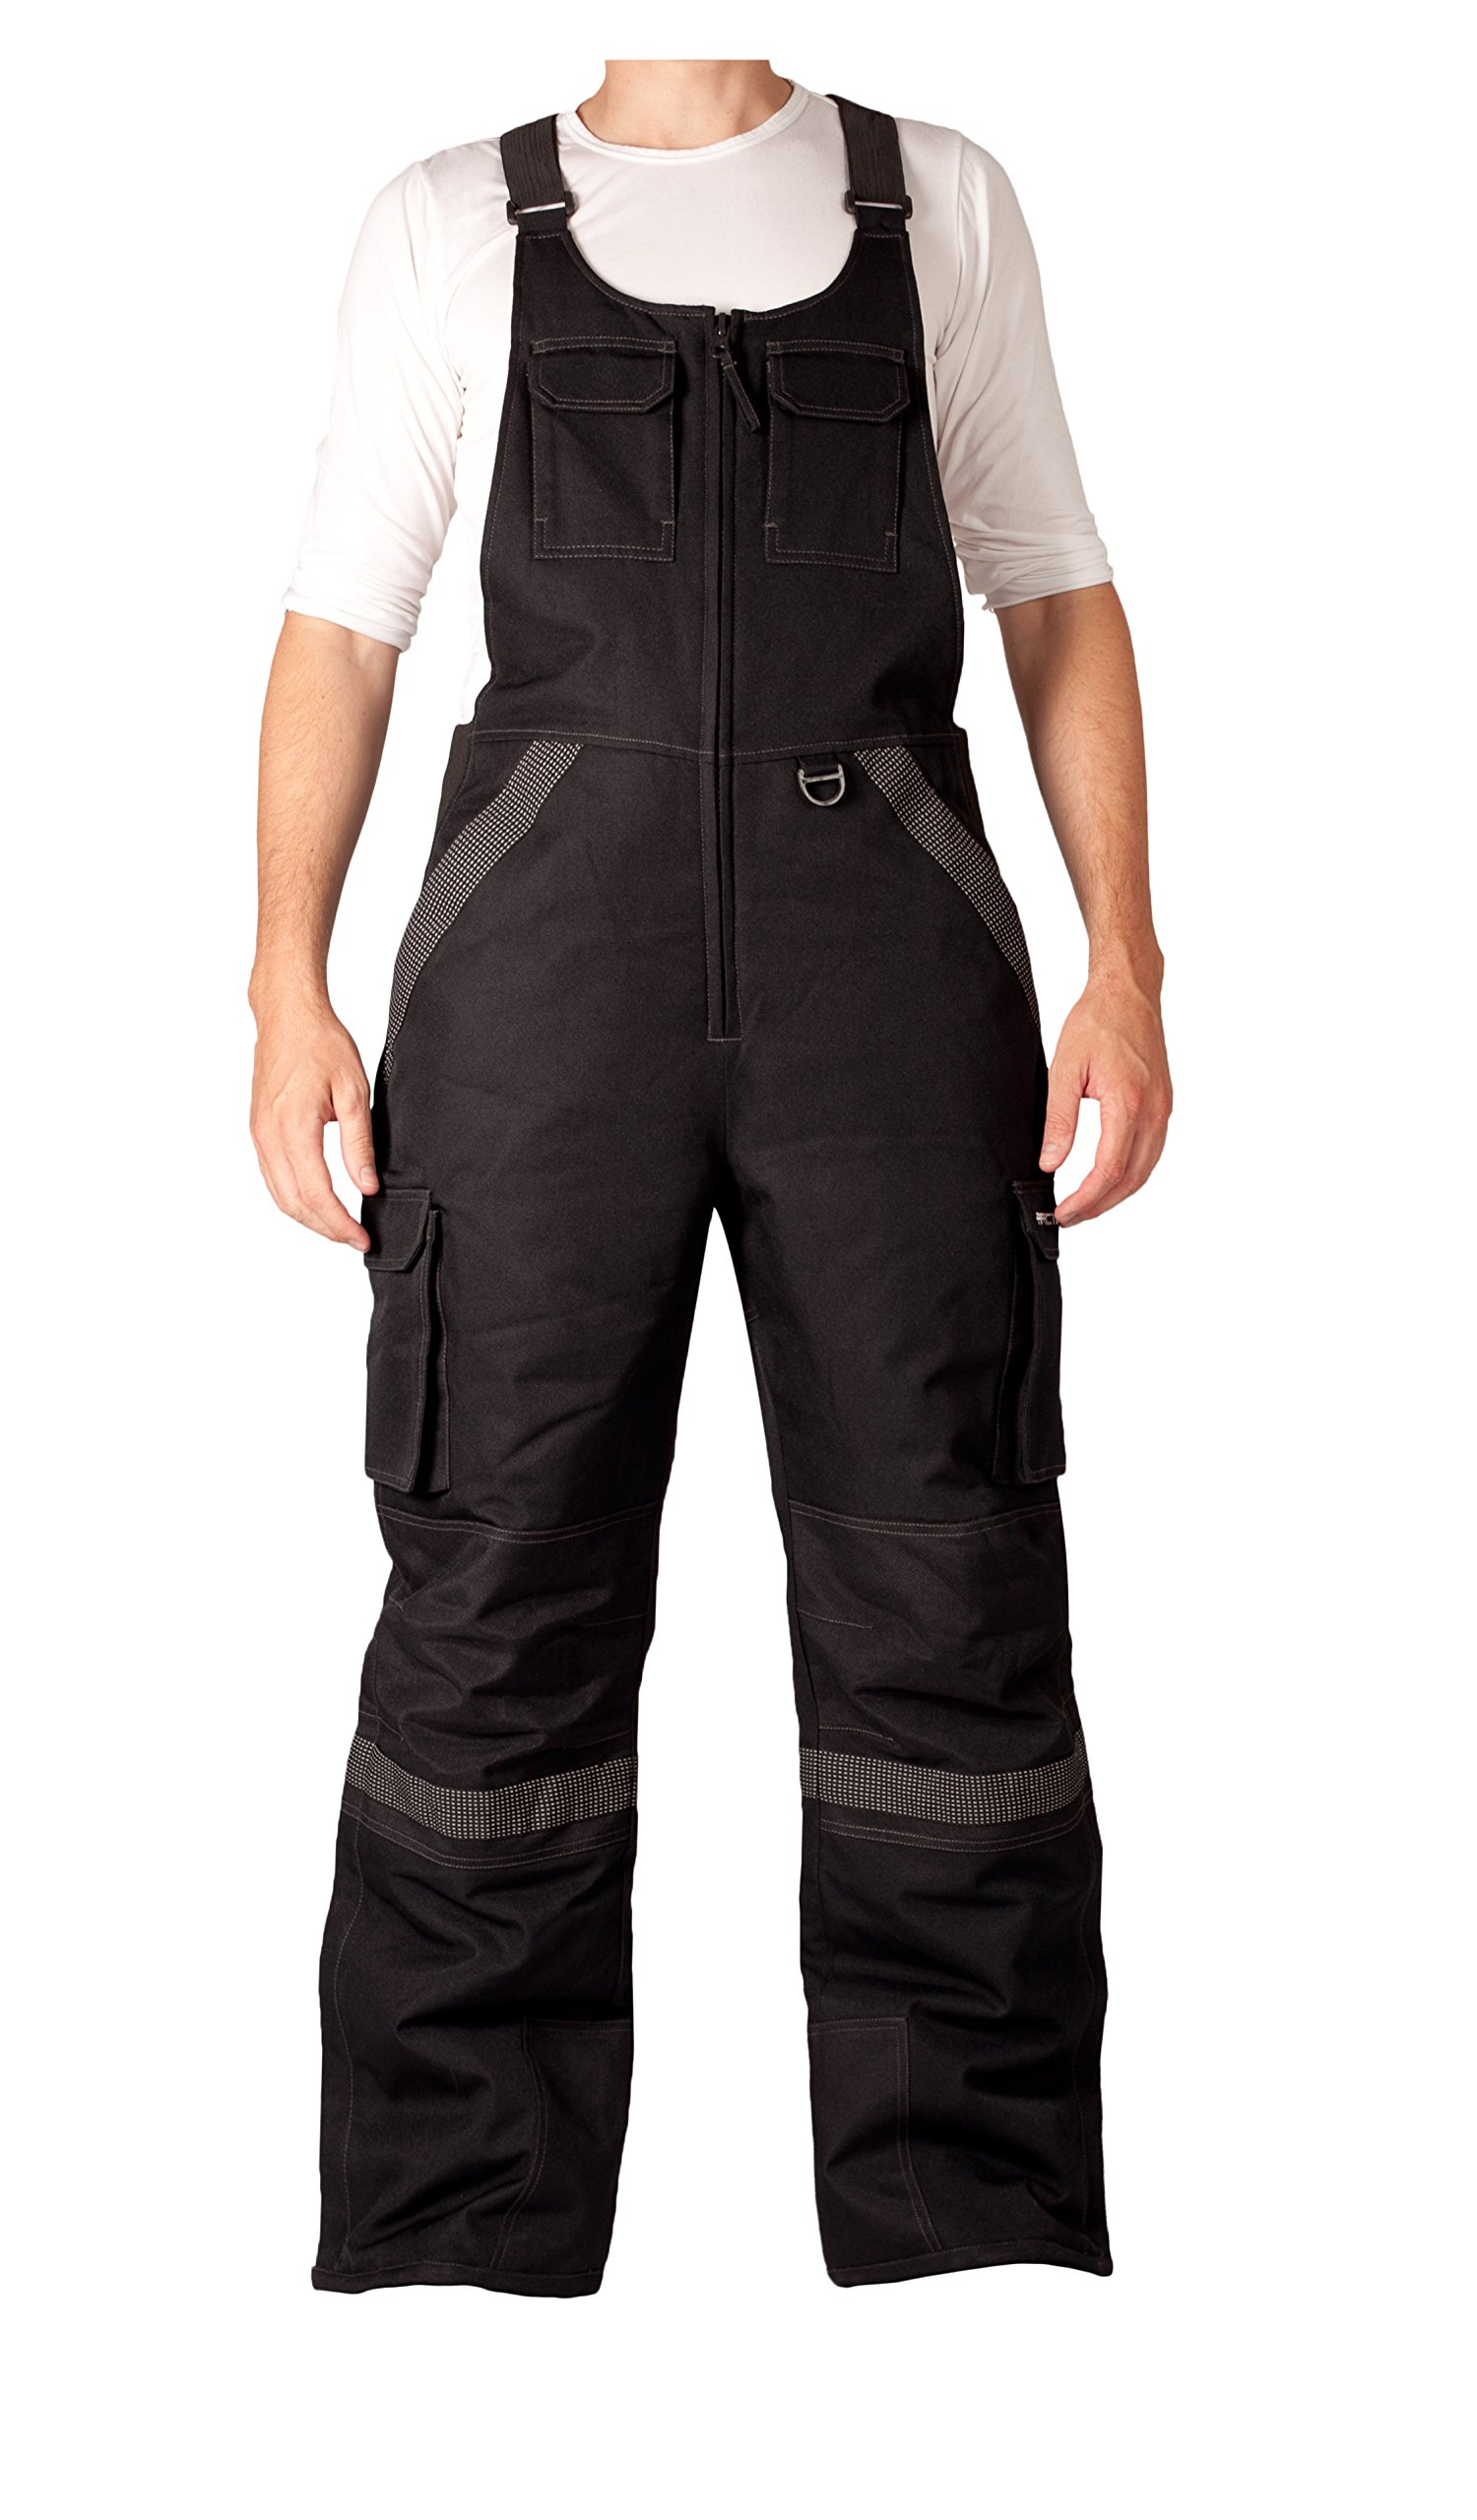 Arctix Men's Tundra Ballistic Bib Overalls With Added Visibility, Black, X-Large by Arctix